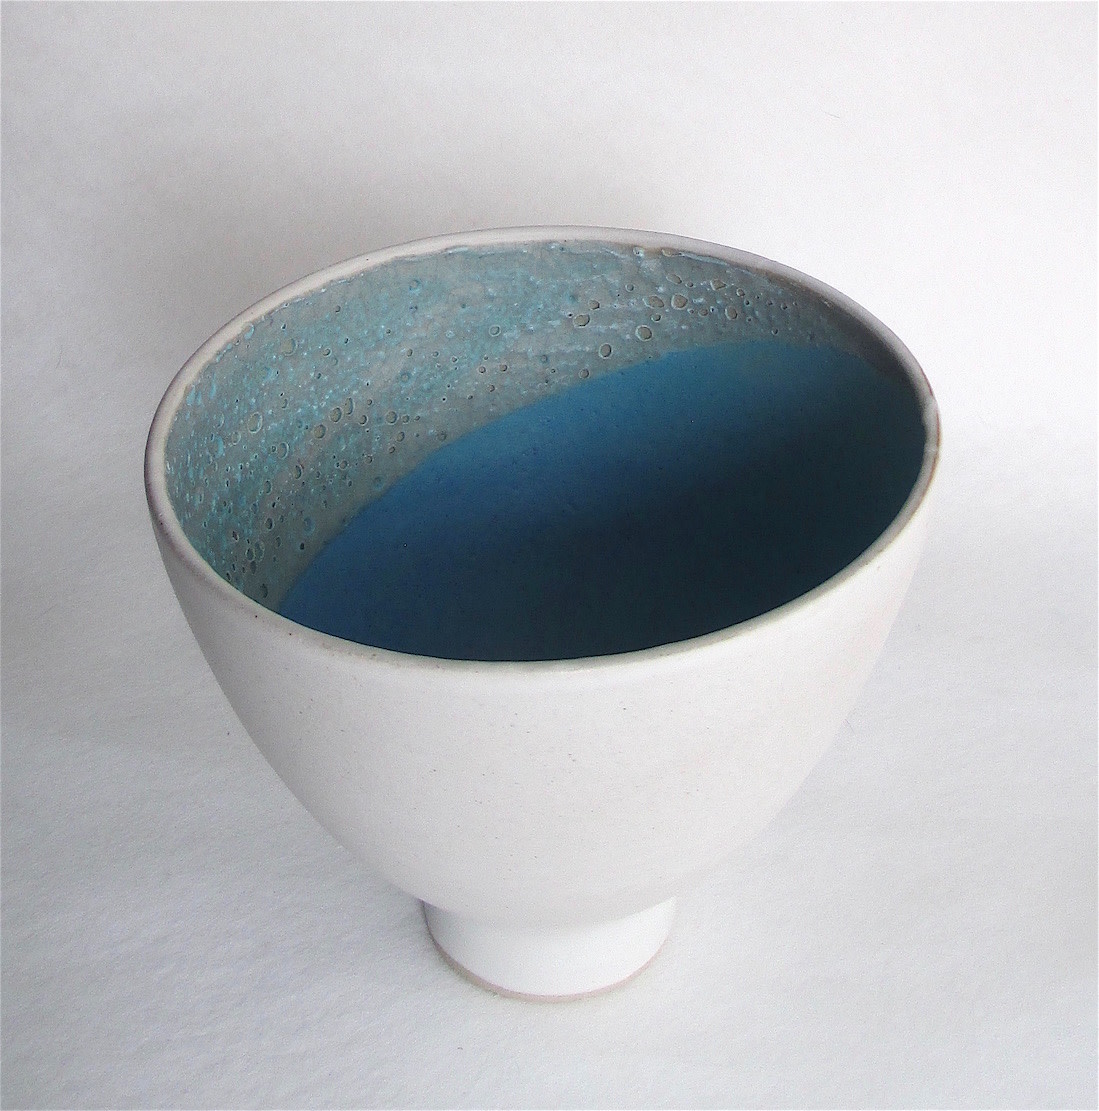 <span class=&#34;link fancybox-details-link&#34;><a href=&#34;/artists/44-sarah-perry/works/6002-sarah-perry-white-crust-bowl-2018/&#34;>View Detail Page</a></span><div class=&#34;artist&#34;><strong>Sarah Perry</strong></div> <div class=&#34;title&#34;><em>White Crust Bowl</em>, 2018</div> <div class=&#34;signed_and_dated&#34;>stamped by the artist's studio mark</div> <div class=&#34;medium&#34;>stoneware</div> <div class=&#34;dimensions&#34;>17 x 20 cm<br /> 6 3/4 x 7 7/8 inches</div><div class=&#34;price&#34;>£165.00</div><div class=&#34;copyright_line&#34;>Copyright The Artist</div>